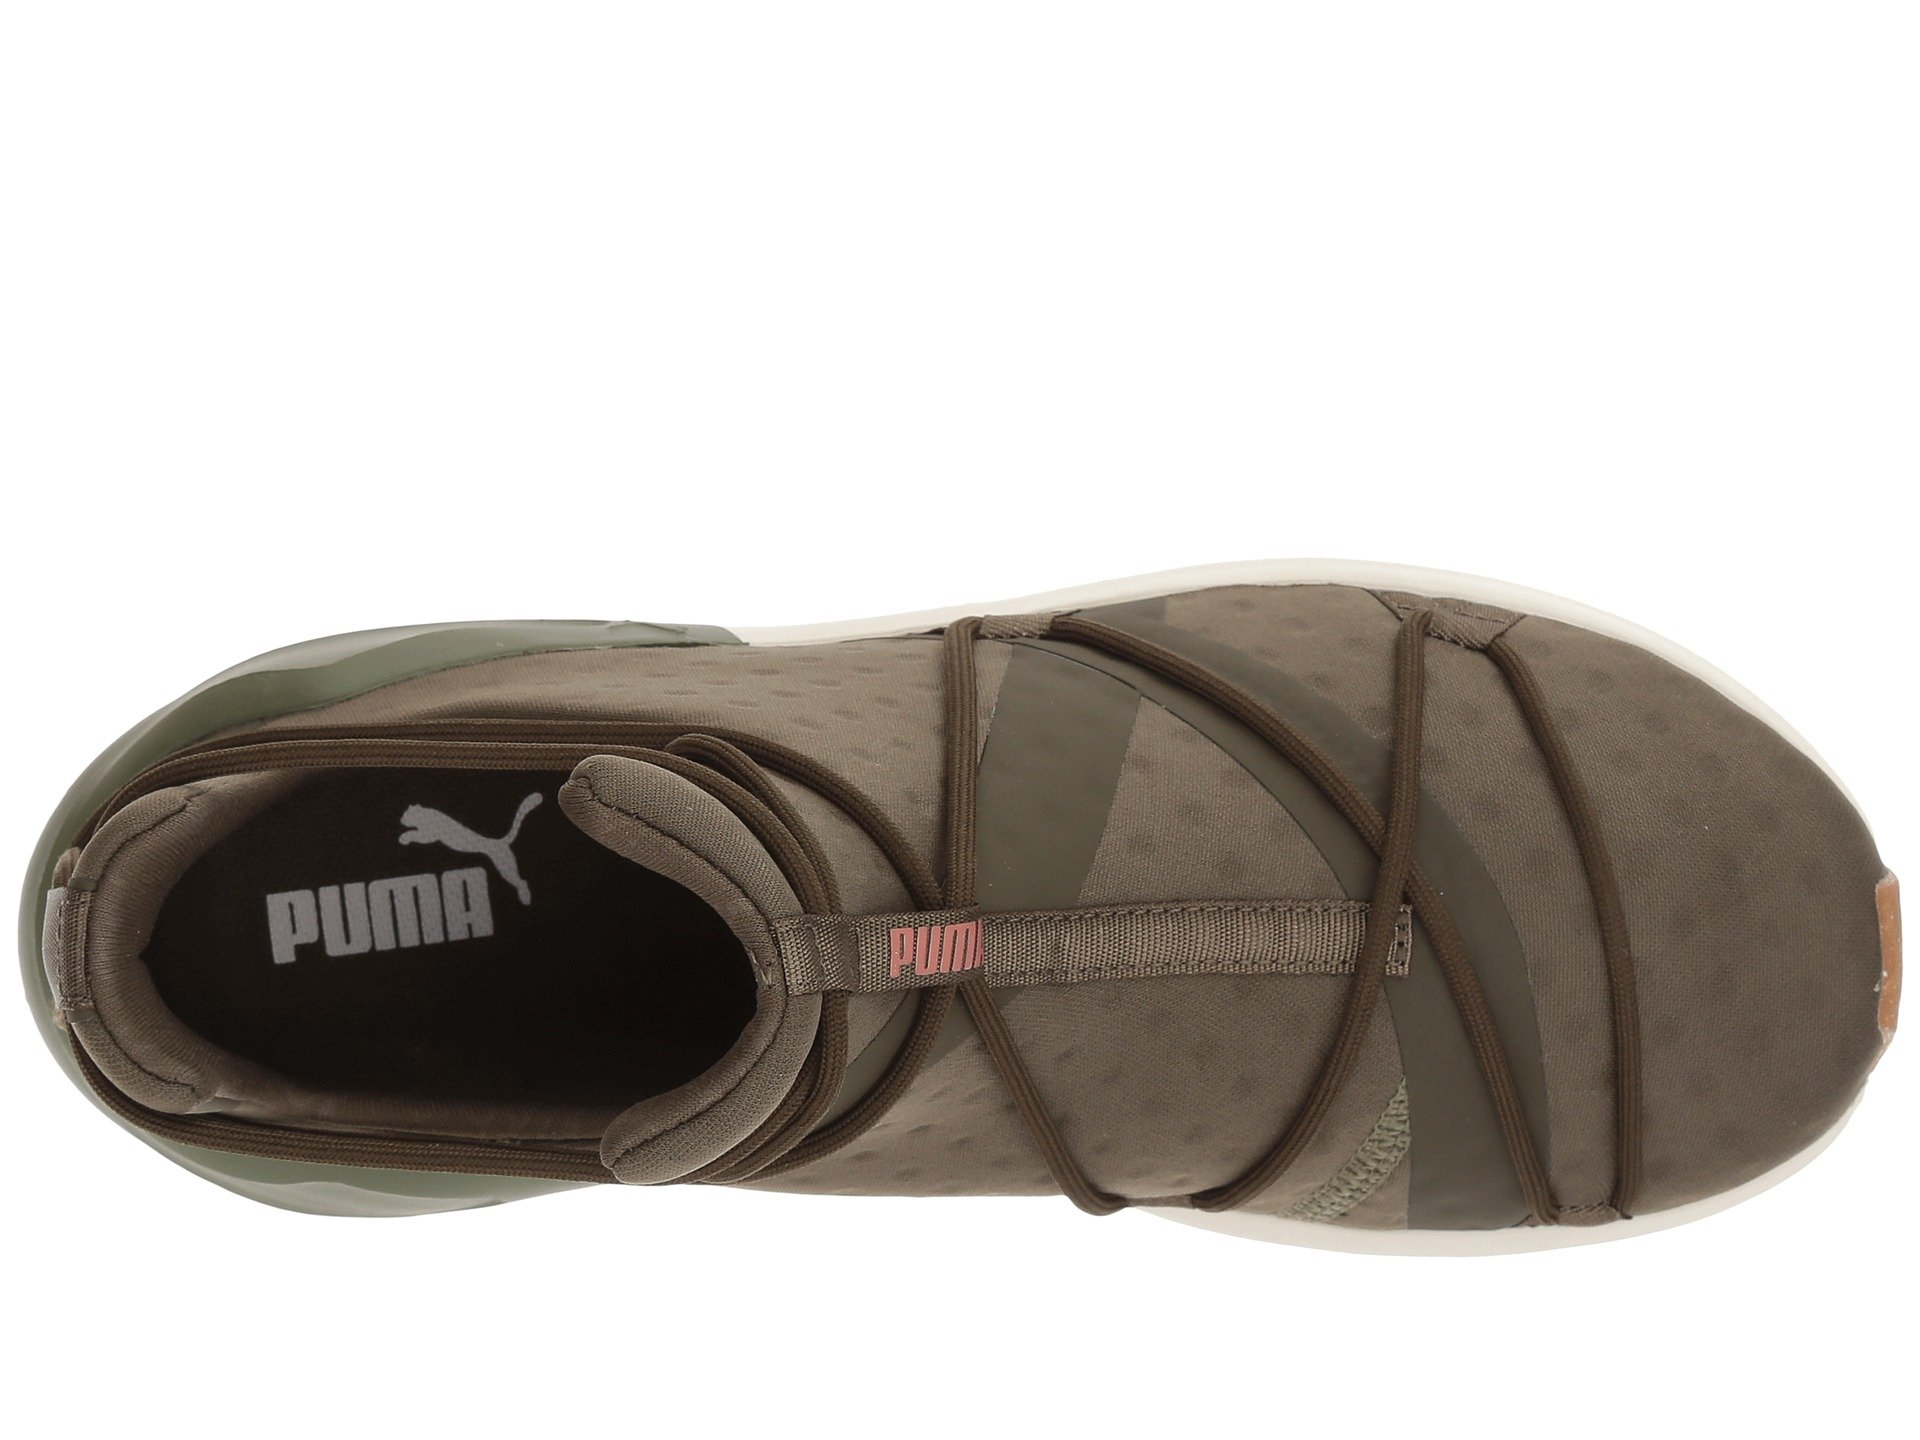 fcfa4490e72 Puma Fierce Rope Vr